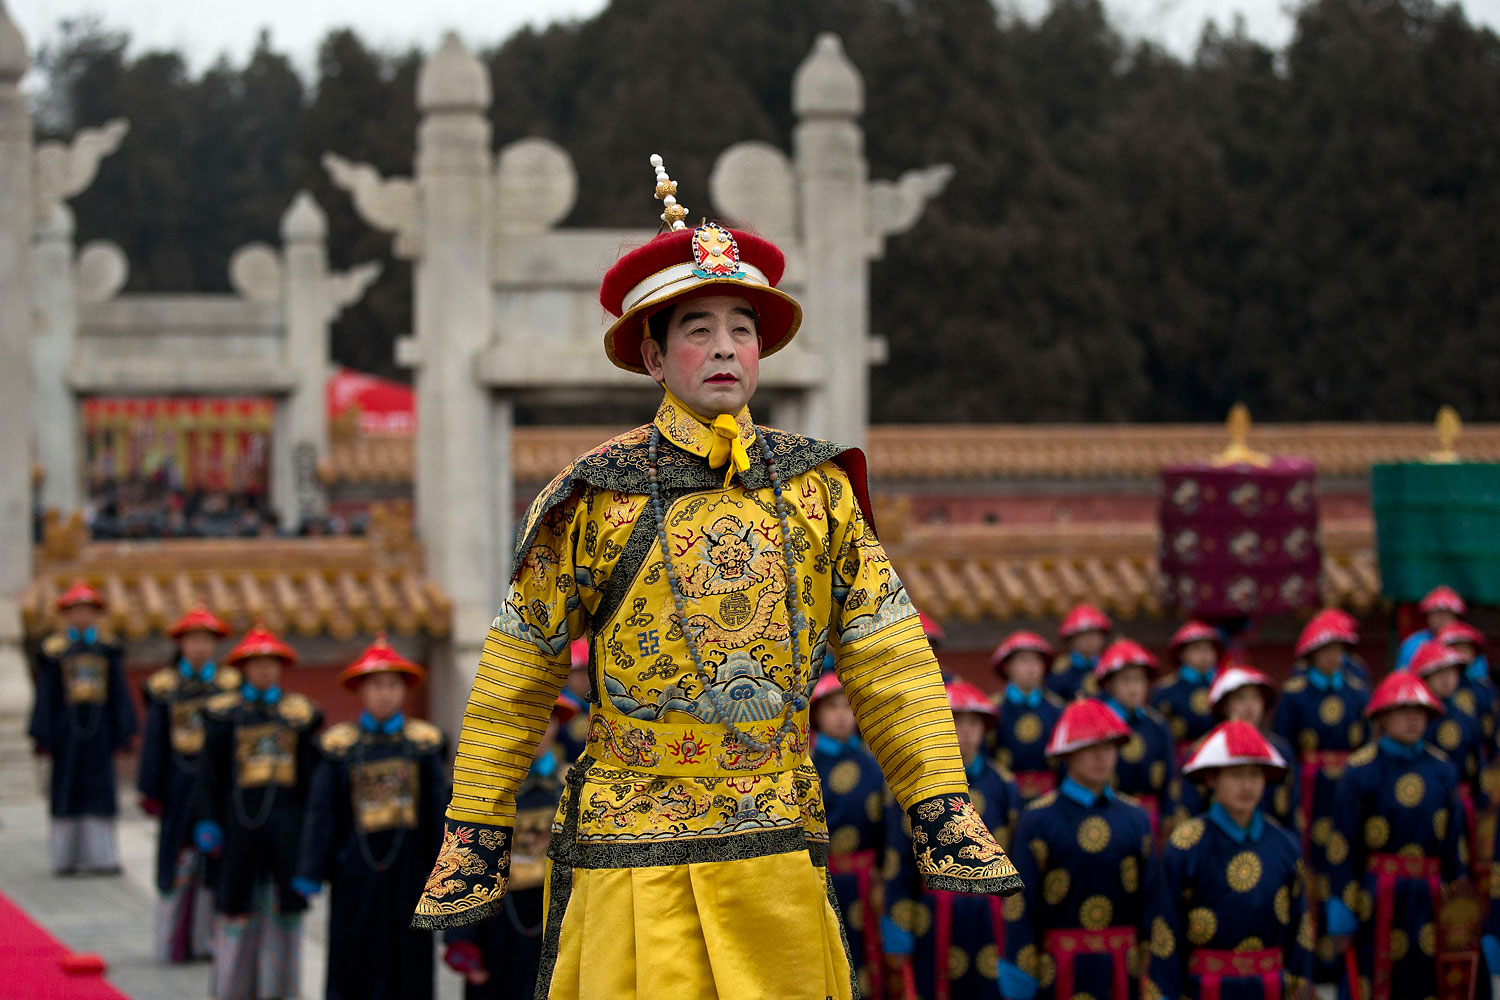 A man dressed as a Qing Dynasty emperor performs in a reenactment of an imperial ritual ceremony praying for good harvest in the coming year at the Temple of Earth park on the Spring Festival in Beijing Jan. 31, 2014.